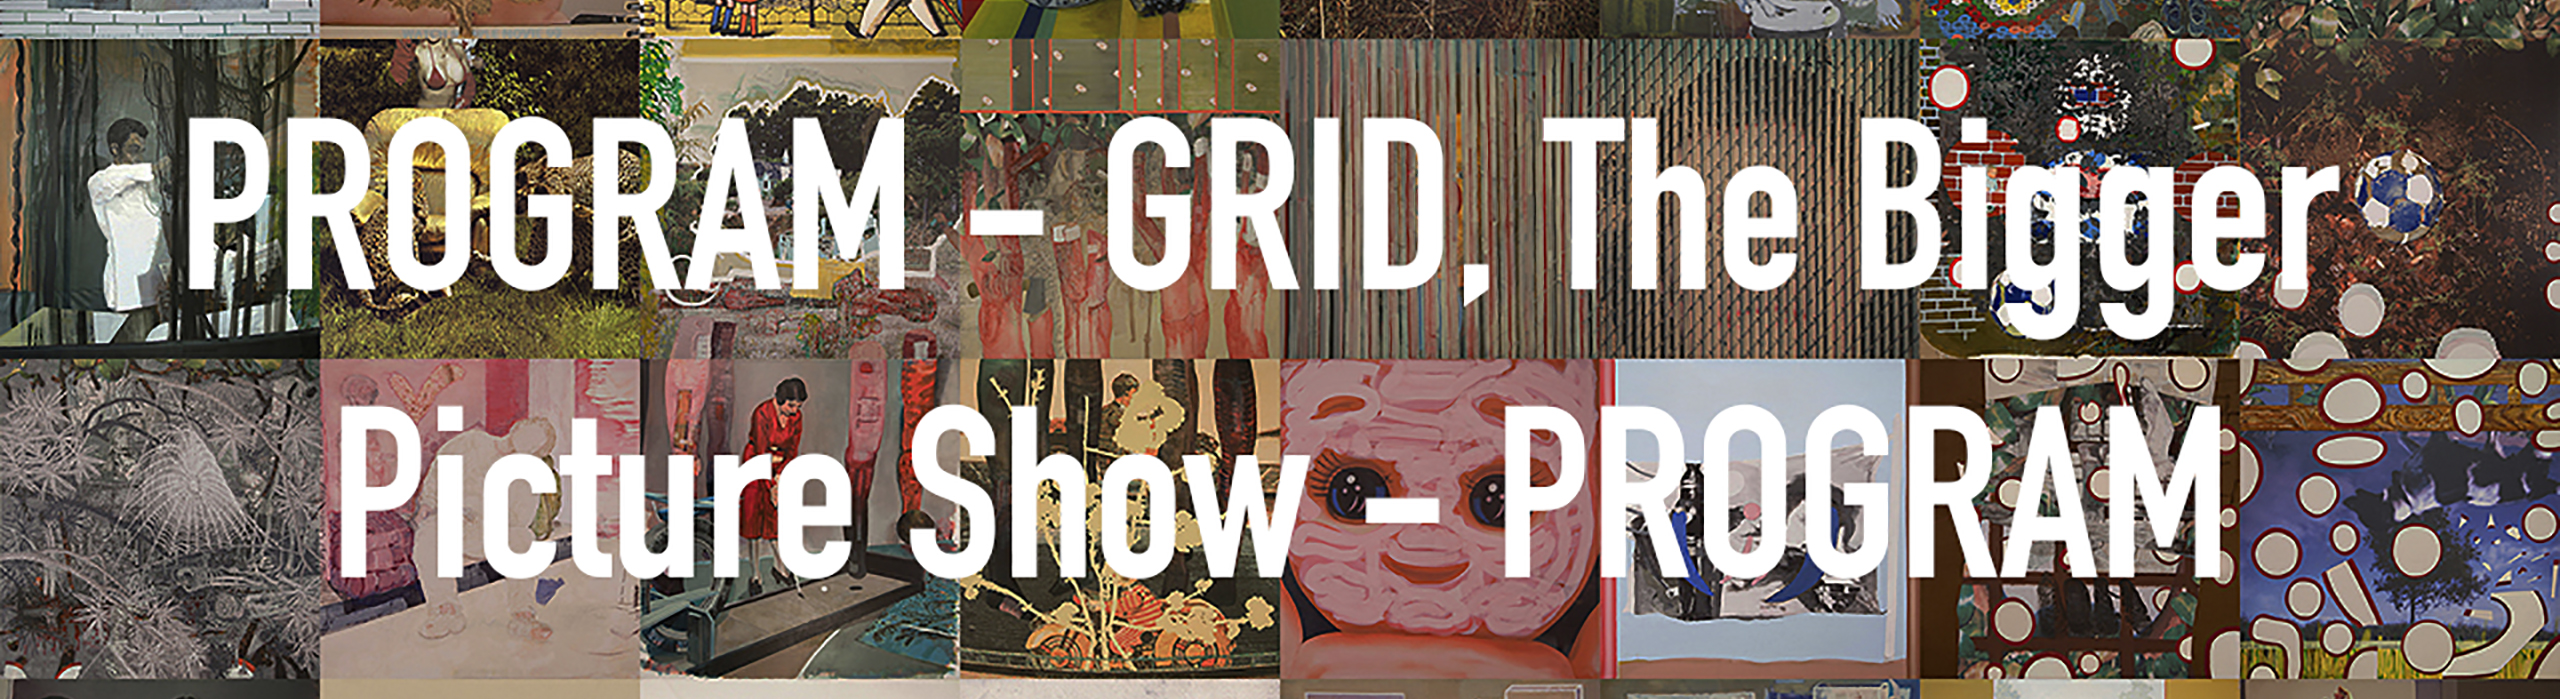 Program_GRID_the_bigger_picture_show_program, dun